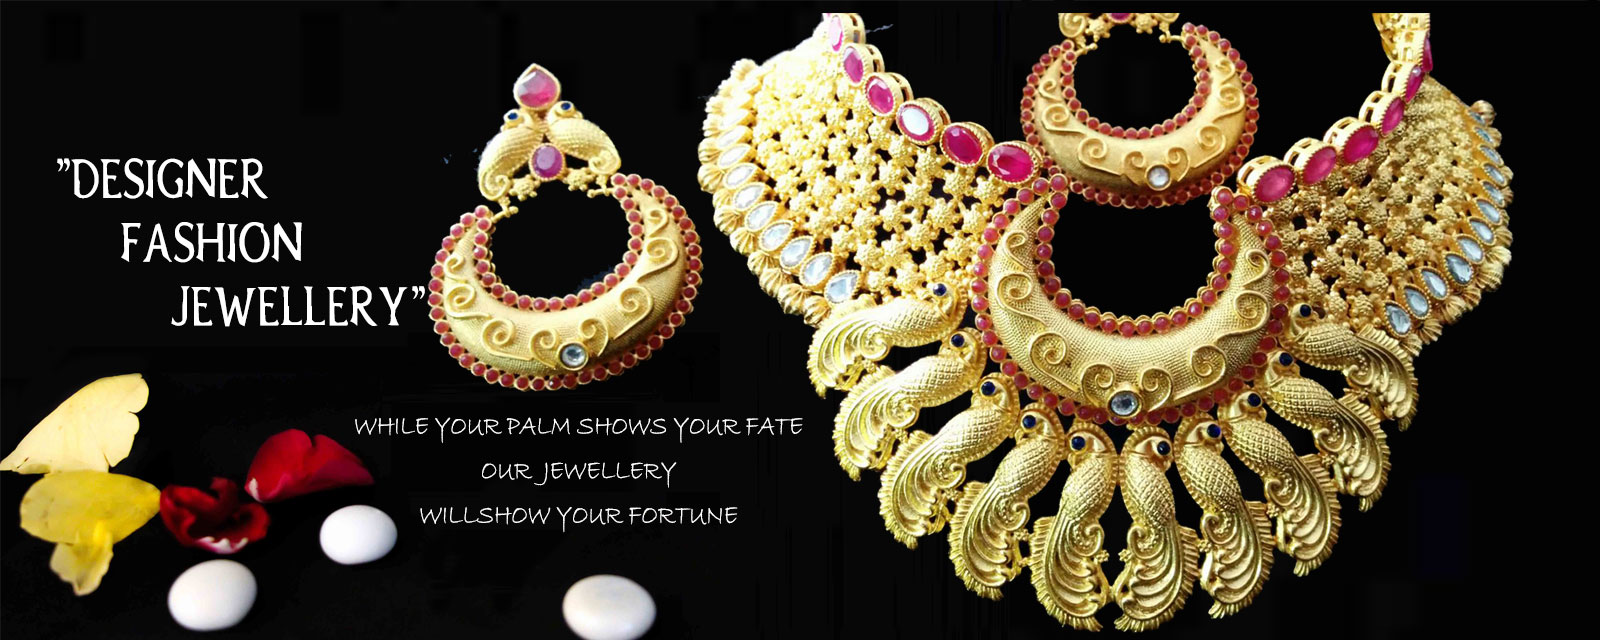 Swarnakammal A D Jewellery Ethnic Collection Jewellery Wholesaler In Chennai